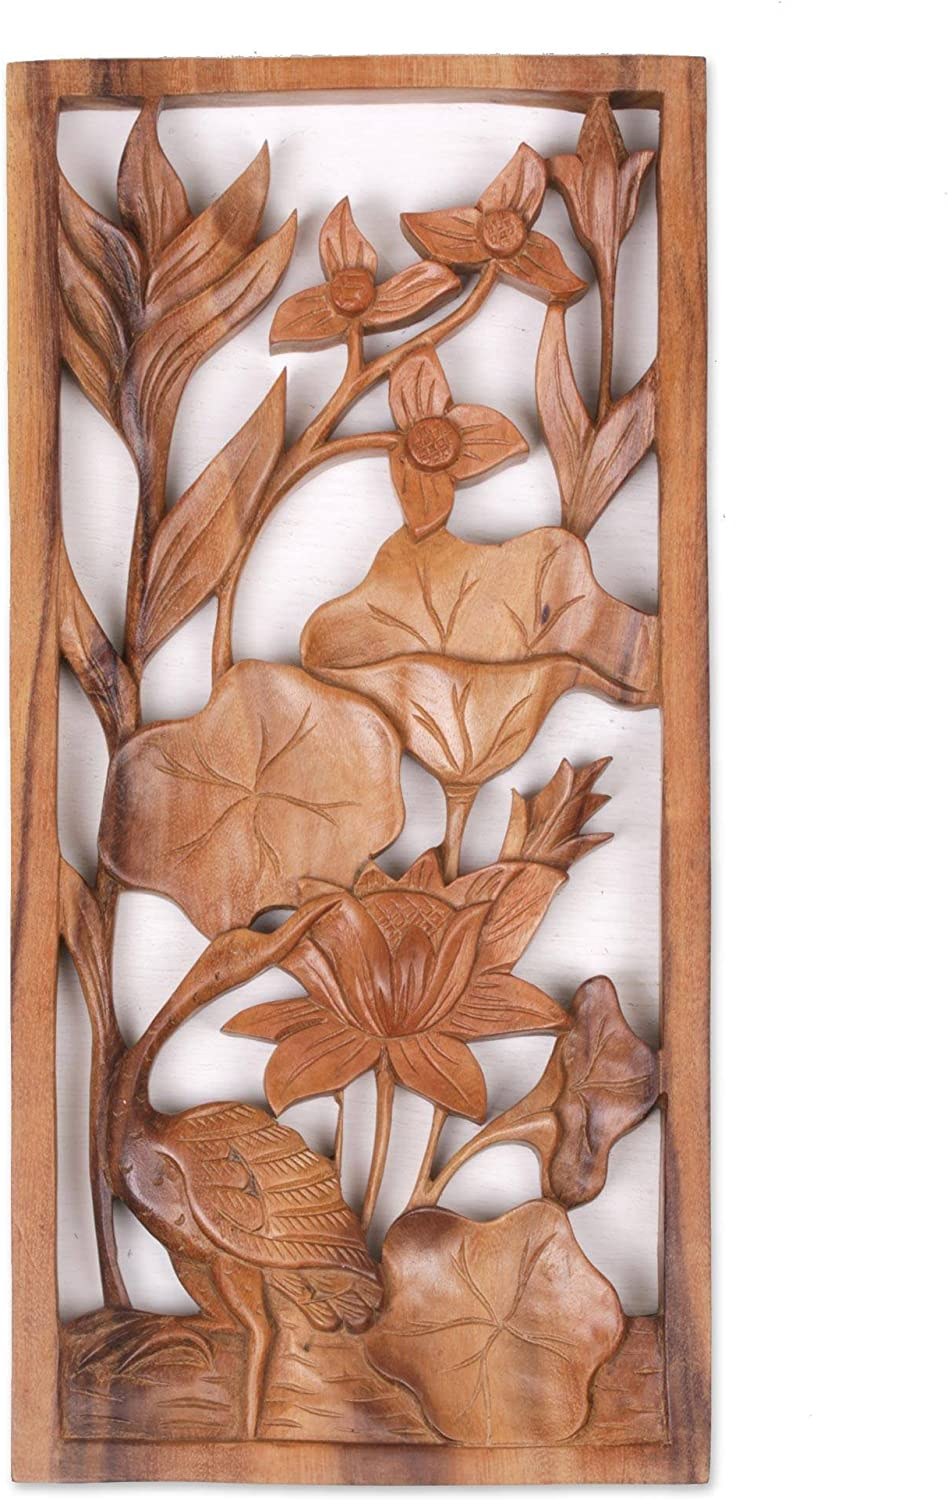 NOVICA Natural Wood Carved Relief Panel Heron and Flower Wall Sculpture, Heron Pond'